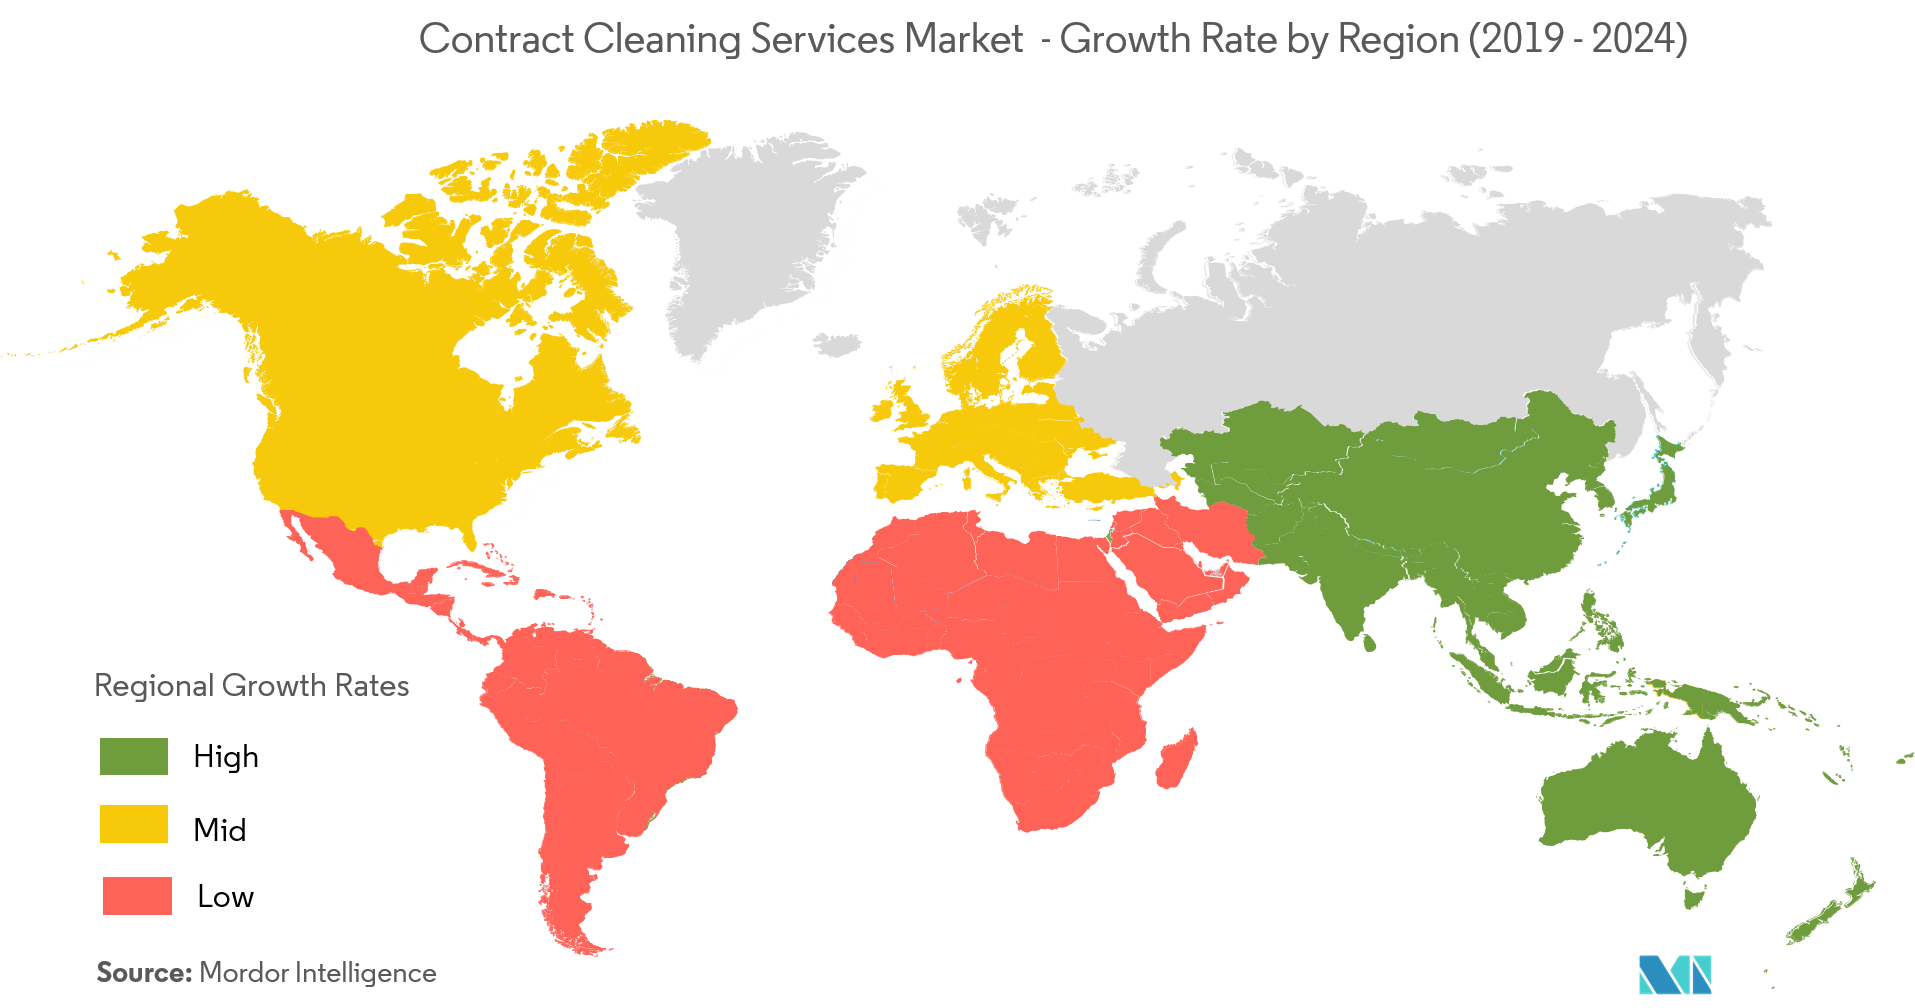 Contract Cleaning Services Market Growth Rate